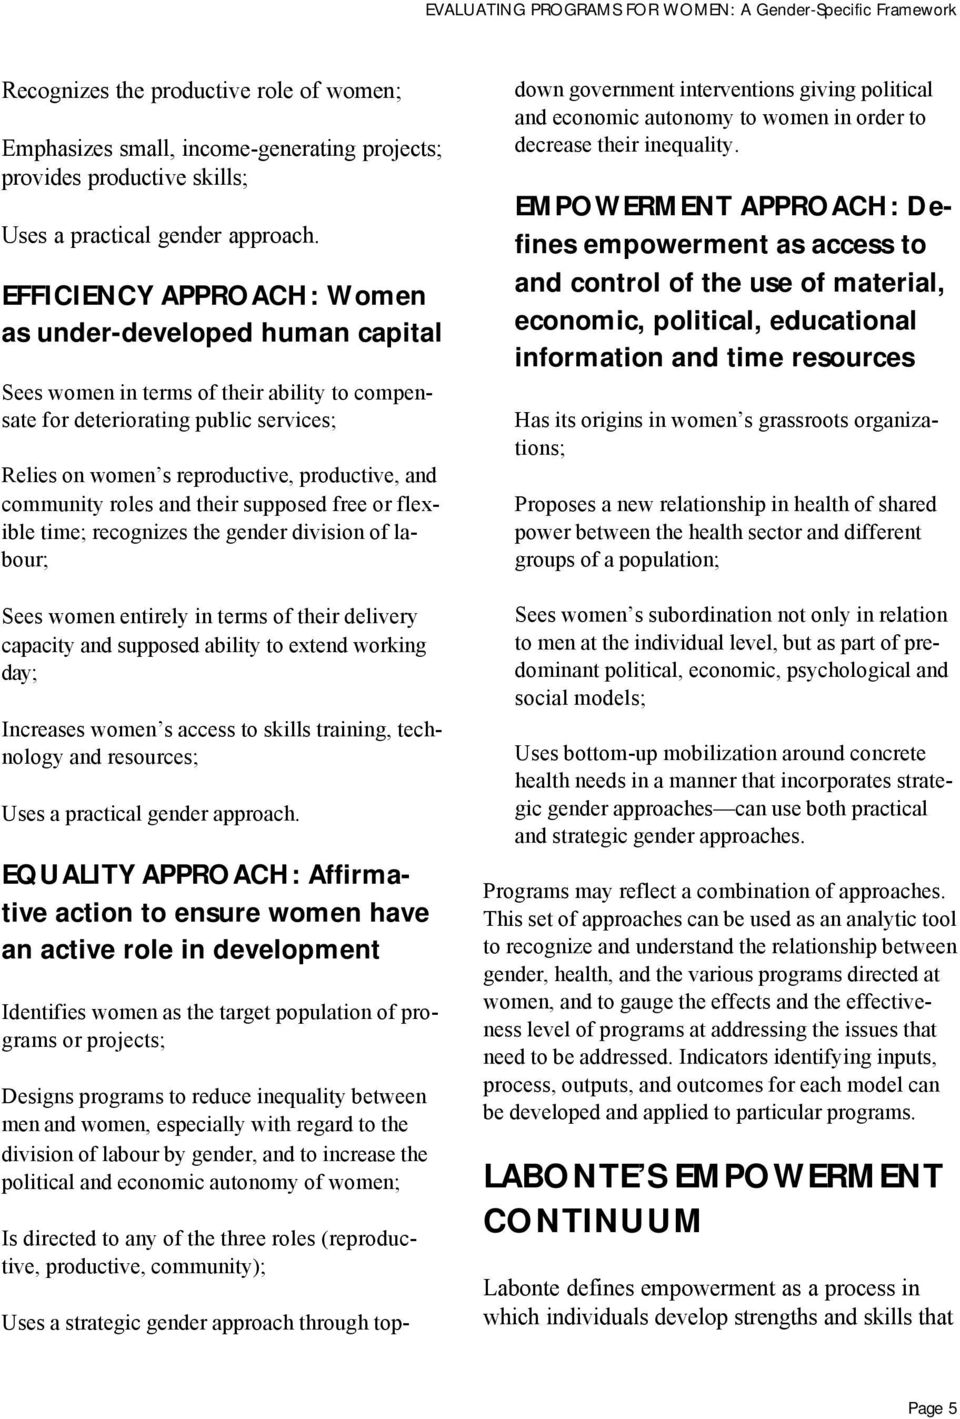 EFFICIENCY APPROACH: Women as under-developed human capital P Sees women in terms of their ability to compensate for deteriorating public services; P Relies on women s reproductive, productive, and